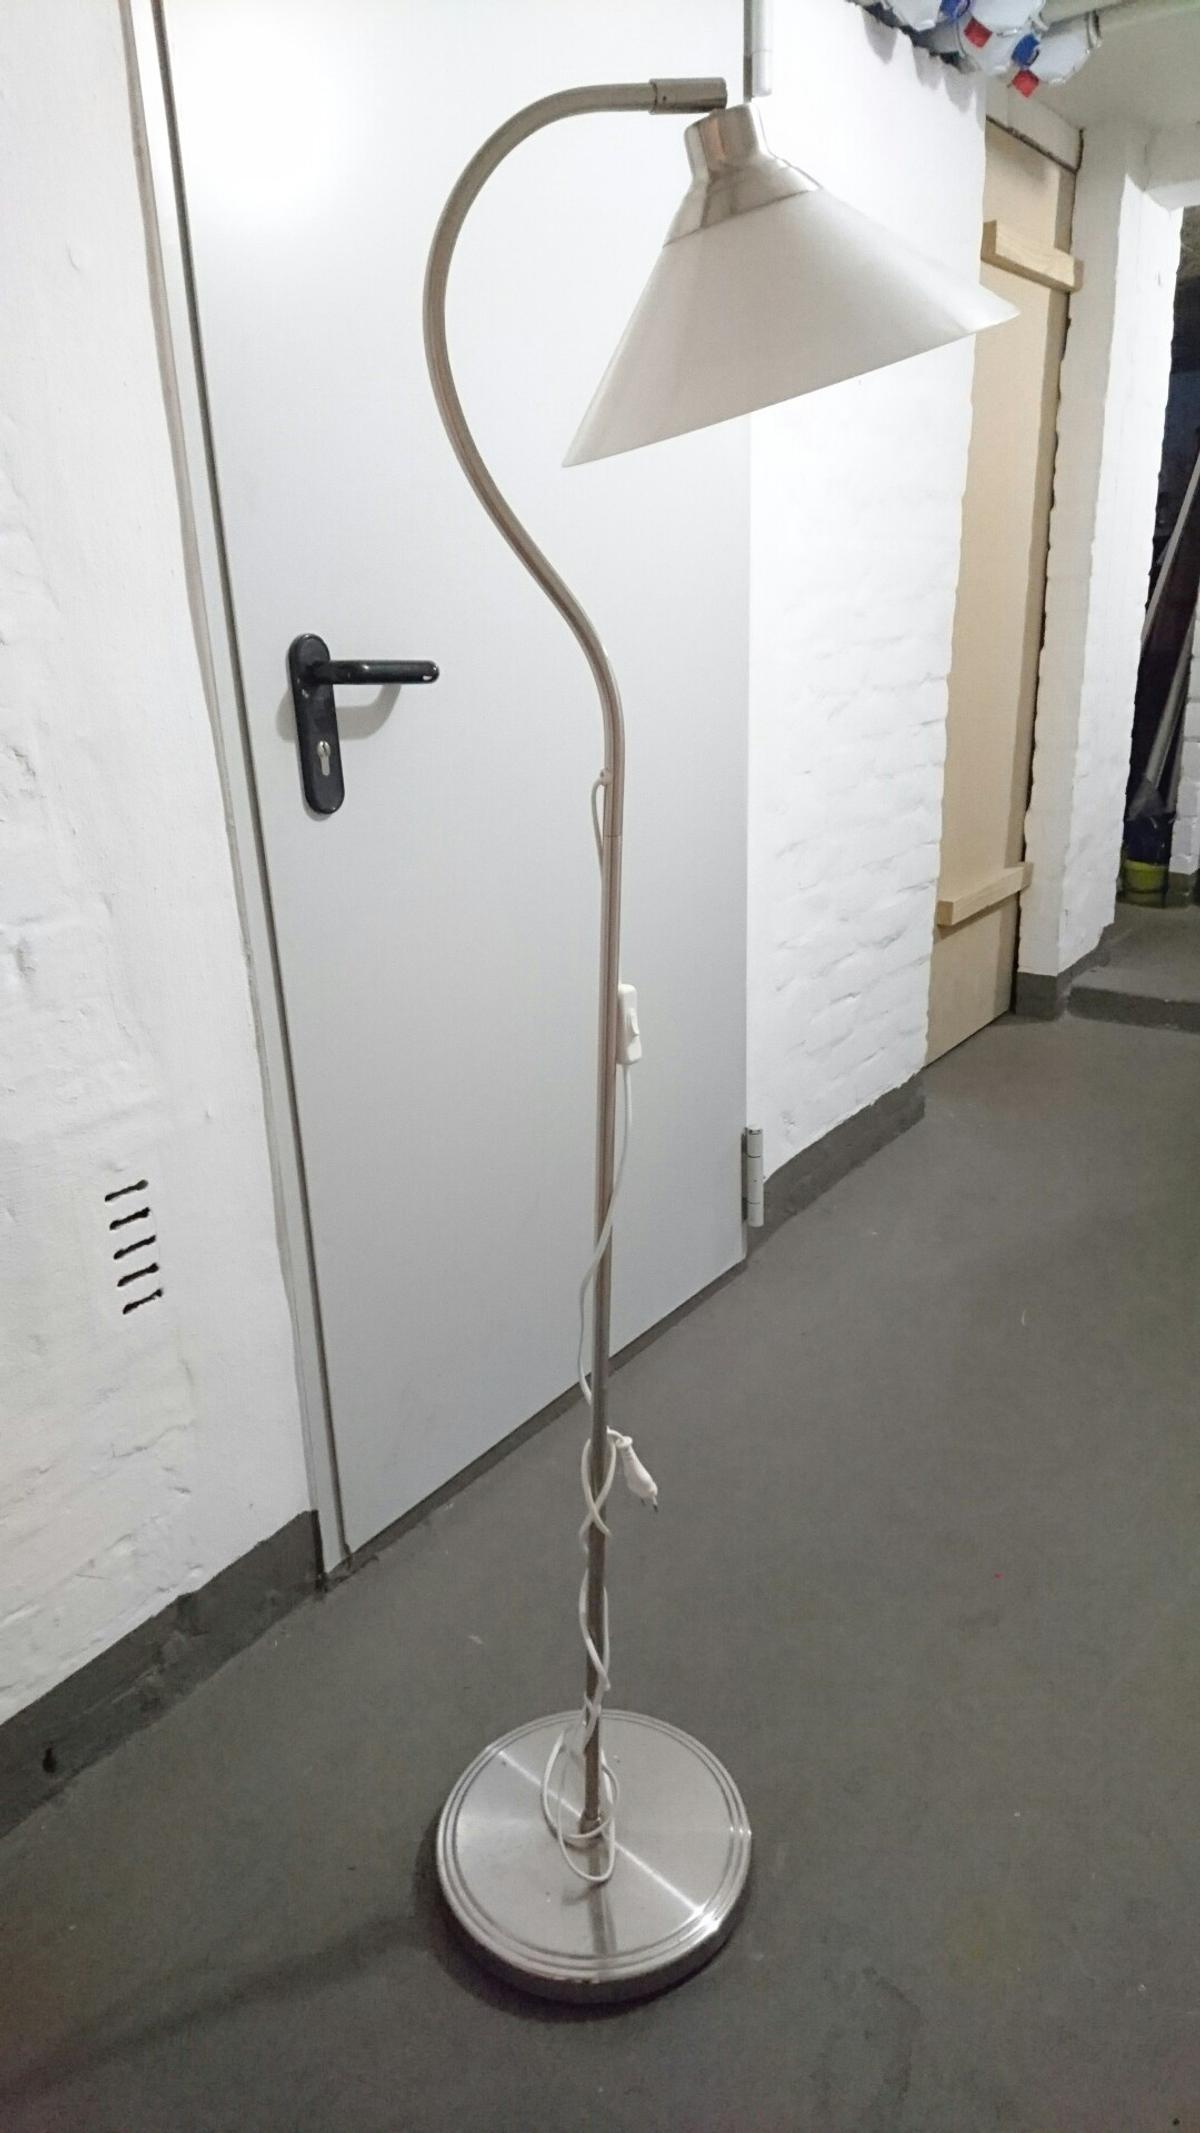 Stehlampe Weiss Ikea In 21129 Hamburg For 10 00 For Sale Shpock